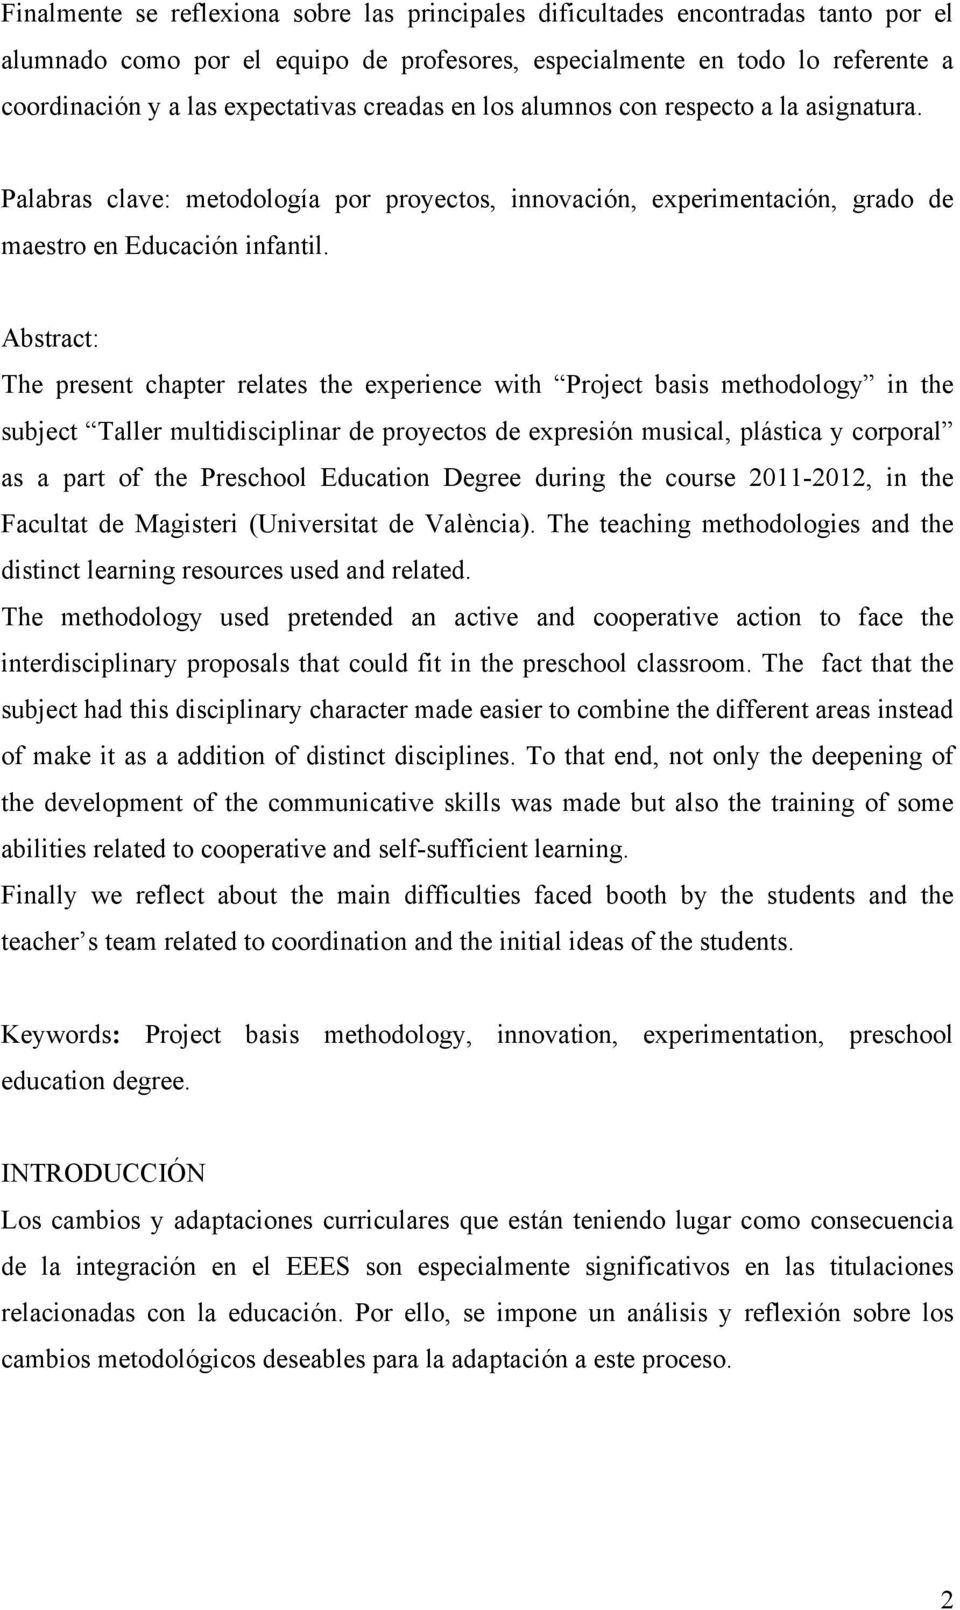 Abstract: The present chapter relates the experience with Project basis methodology in the subject Taller multidisciplinar de proyectos de expresión musical, plástica y corporal as a part of the